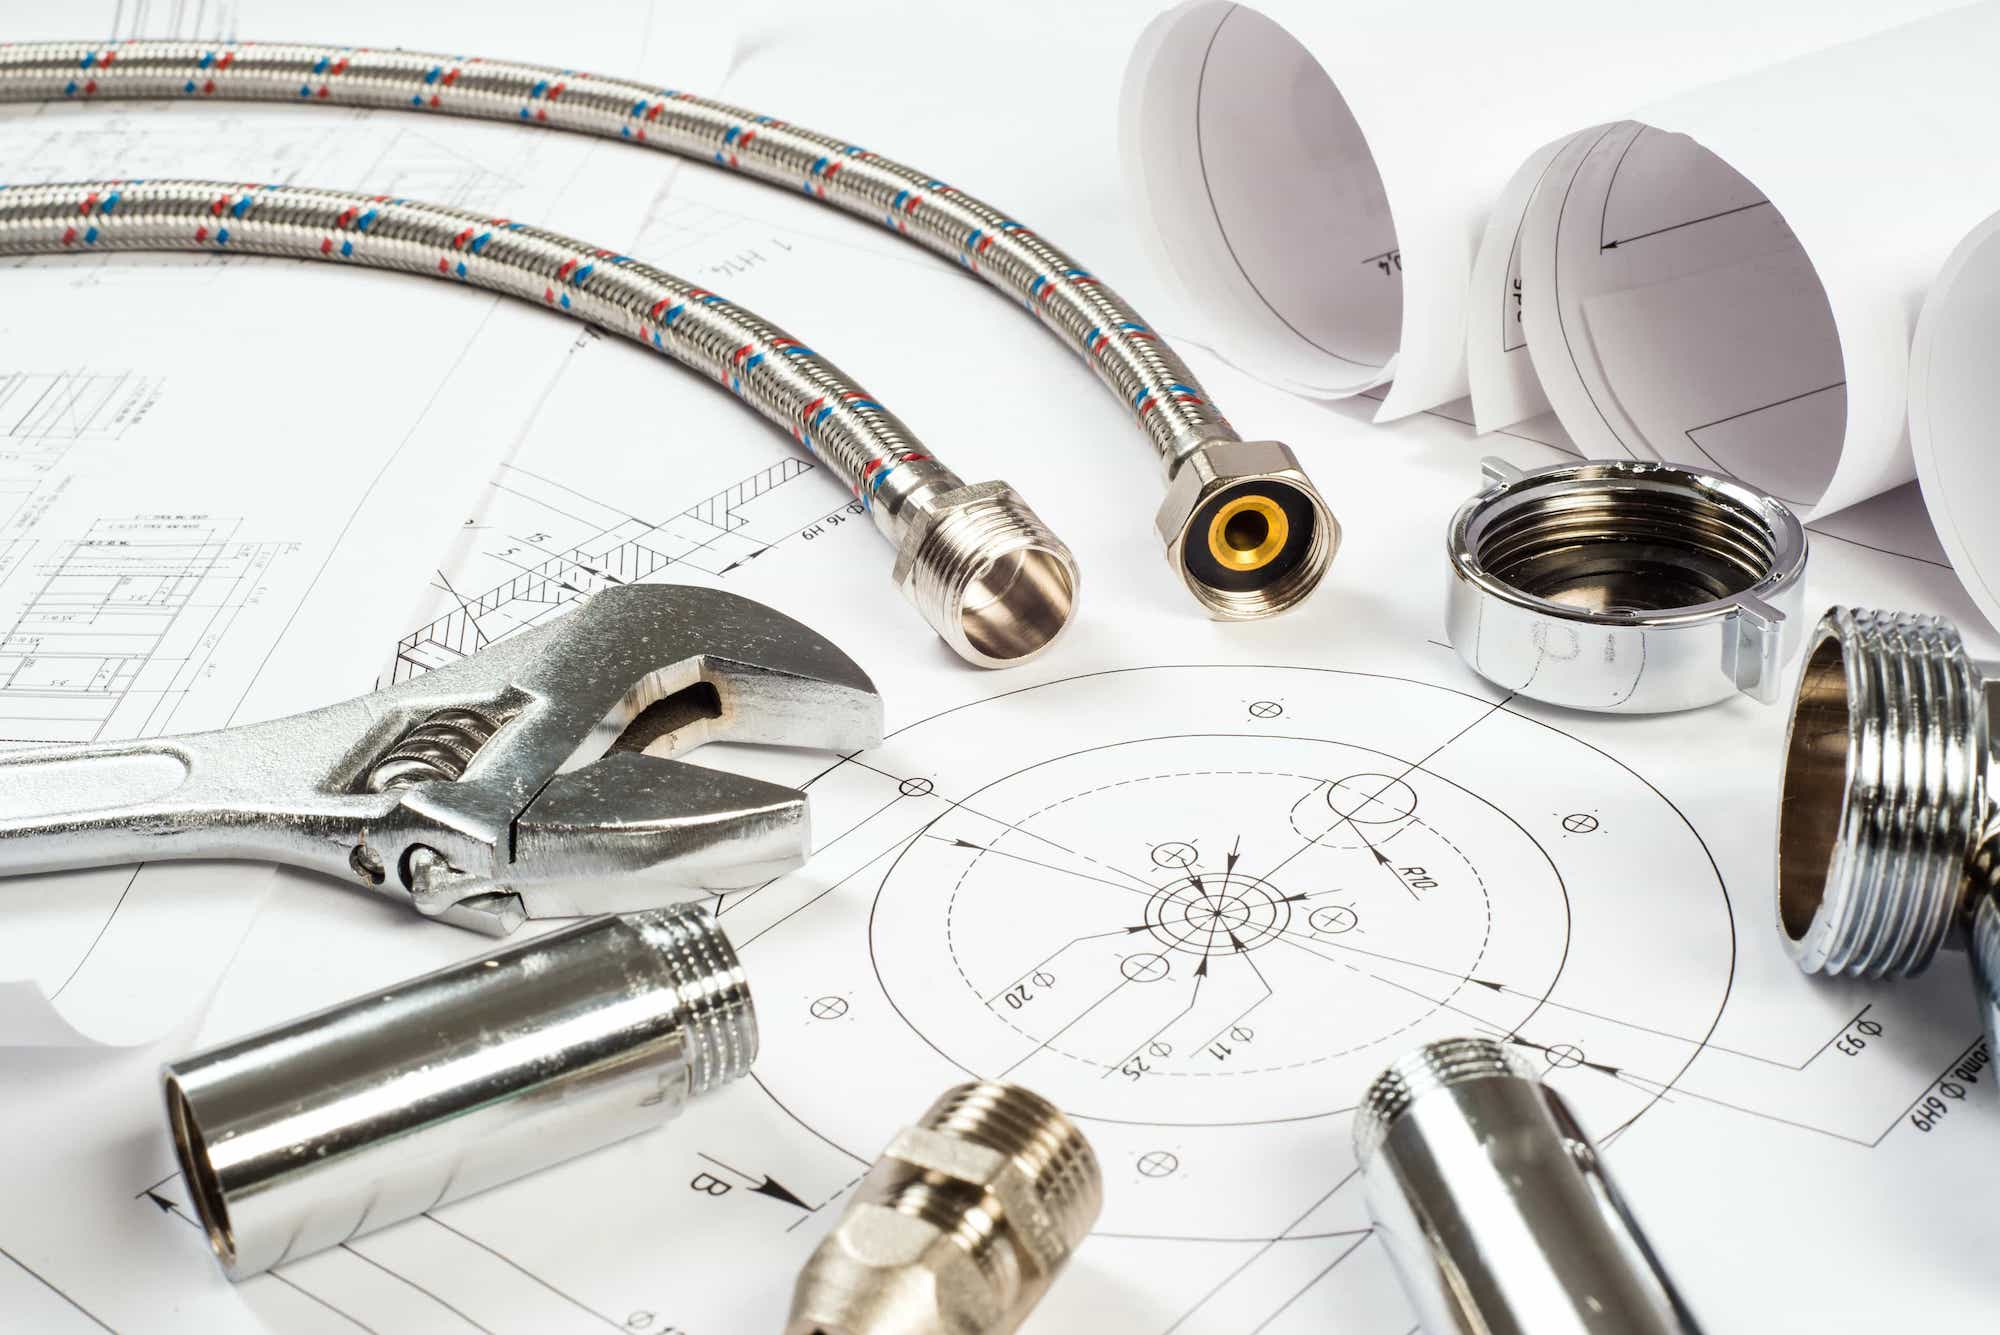 plumbing tools and supplies